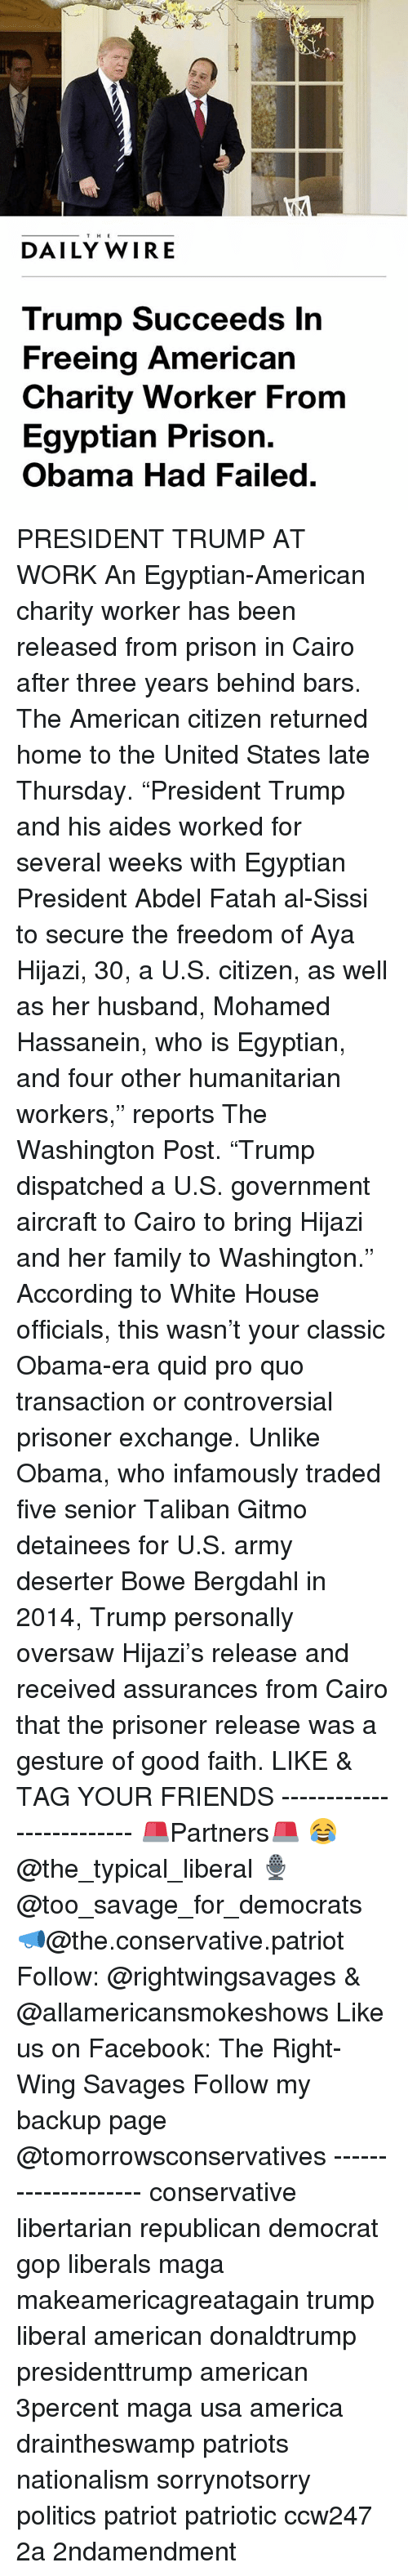 """Talibanned: THE  DAILY WIRE  Trump Succeeds In  Freeing American  Charity Worker From  Egyptian Prison.  Obama Had Failed PRESIDENT TRUMP AT WORK An Egyptian-American charity worker has been released from prison in Cairo after three years behind bars. The American citizen returned home to the United States late Thursday. """"President Trump and his aides worked for several weeks with Egyptian President Abdel Fatah al-Sissi to secure the freedom of Aya Hijazi, 30, a U.S. citizen, as well as her husband, Mohamed Hassanein, who is Egyptian, and four other humanitarian workers,"""" reports The Washington Post. """"Trump dispatched a U.S. government aircraft to Cairo to bring Hijazi and her family to Washington."""" According to White House officials, this wasn't your classic Obama-era quid pro quo transaction or controversial prisoner exchange. Unlike Obama, who infamously traded five senior Taliban Gitmo detainees for U.S. army deserter Bowe Bergdahl in 2014, Trump personally oversaw Hijazi's release and received assurances from Cairo that the prisoner release was a gesture of good faith. LIKE & TAG YOUR FRIENDS ------------------------- 🚨Partners🚨 😂@the_typical_liberal 🎙@too_savage_for_democrats 📣@the.conservative.patriot Follow: @rightwingsavages & @allamericansmokeshows Like us on Facebook: The Right-Wing Savages Follow my backup page @tomorrowsconservatives -------------------- conservative libertarian republican democrat gop liberals maga makeamericagreatagain trump liberal american donaldtrump presidenttrump american 3percent maga usa america draintheswamp patriots nationalism sorrynotsorry politics patriot patriotic ccw247 2a 2ndamendment"""